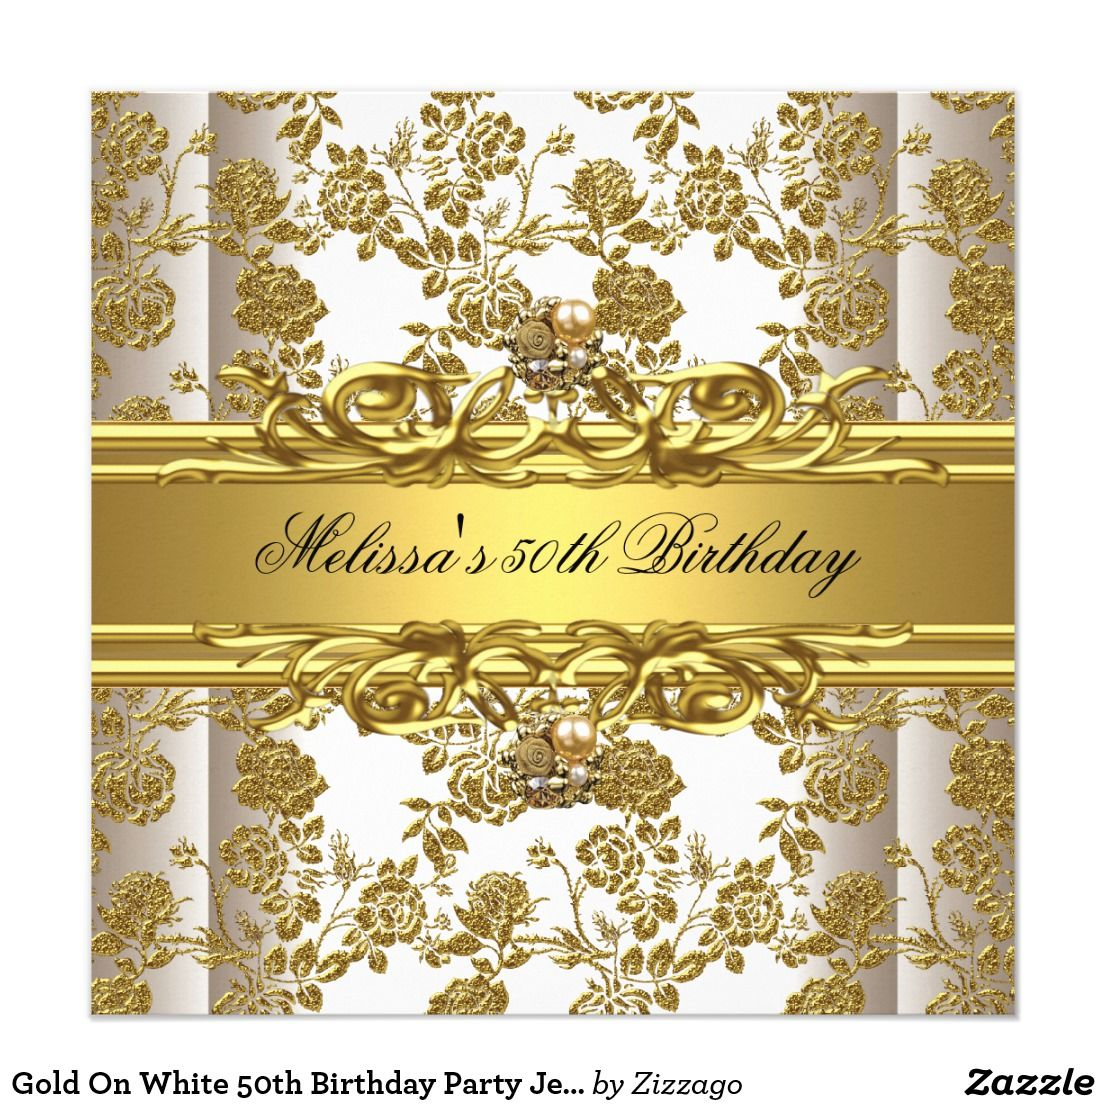 Gold On White 50th Birthday Party Jewels Floral Card Invitation